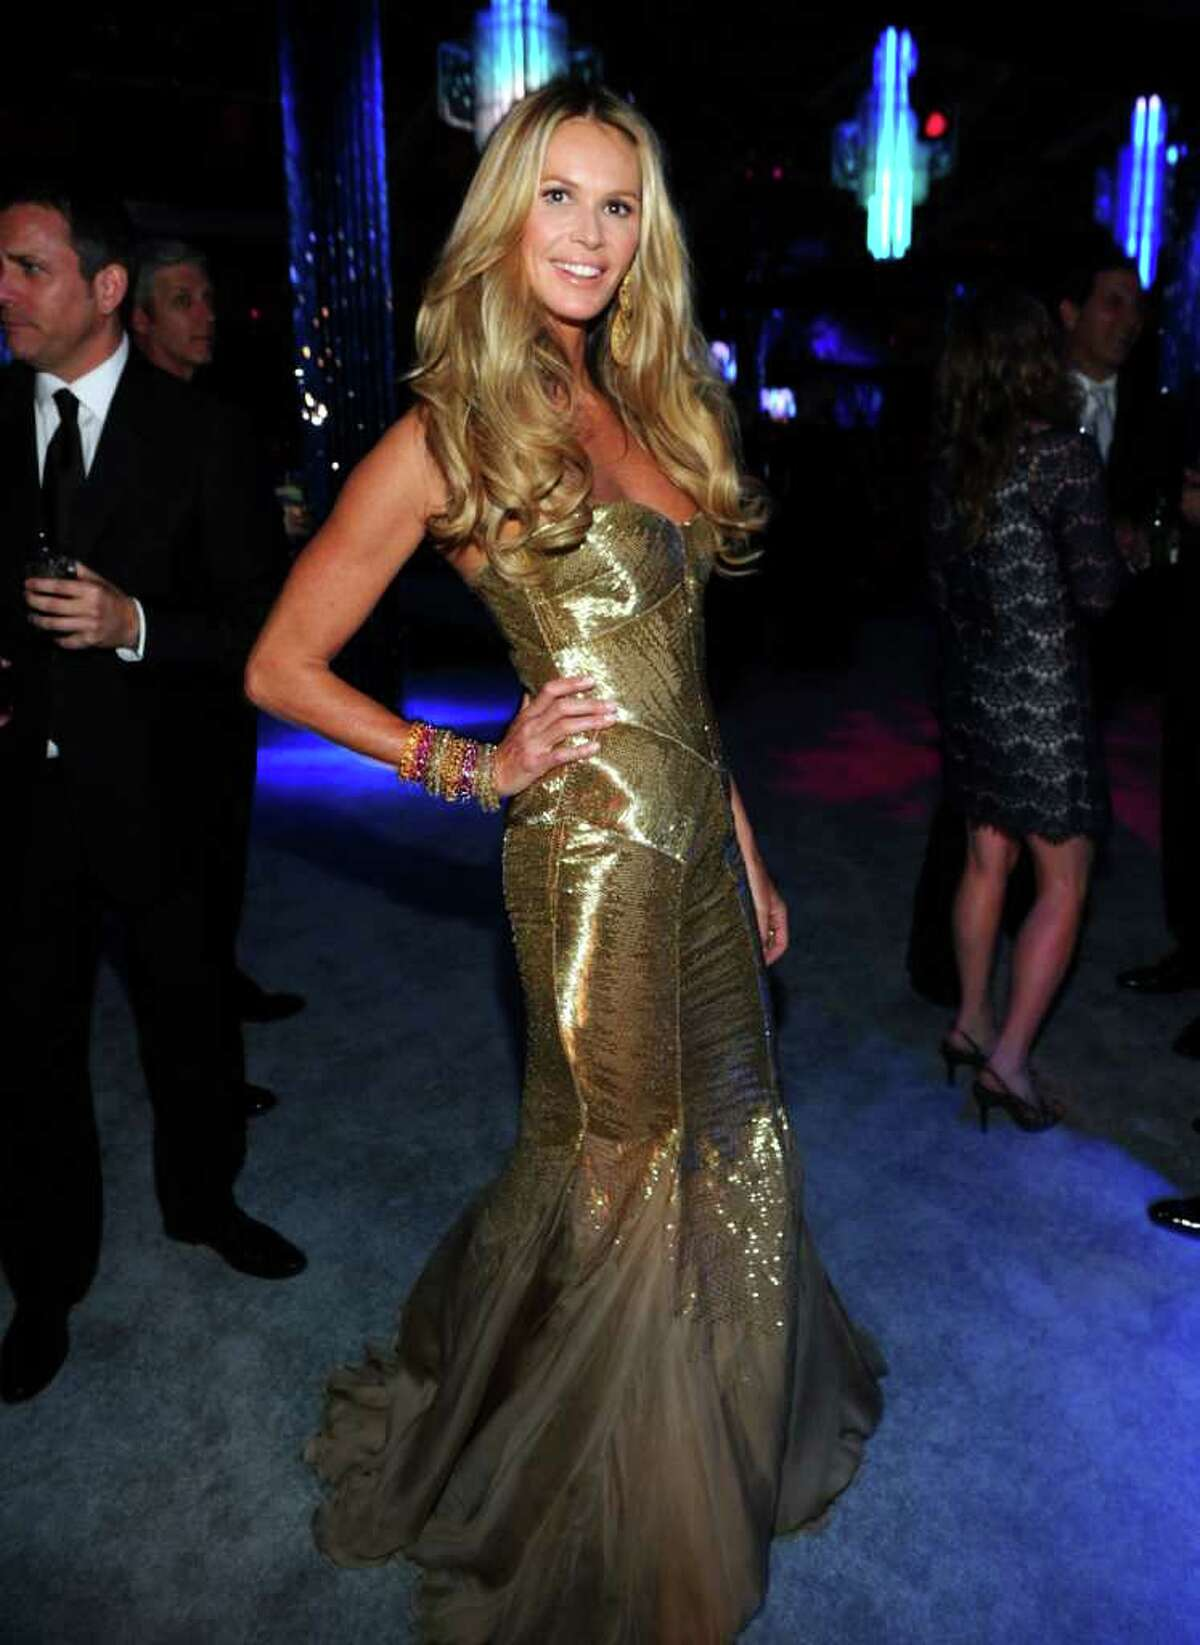 Model/actress Elle Macpherson attends NBCUniversal's 69th Annual Golden Globes Viewing and After Party Sponsored By Chrysler and Hilton at The Beverly Hilton hotel on January 15, 2012 in Beverly Hills, California.